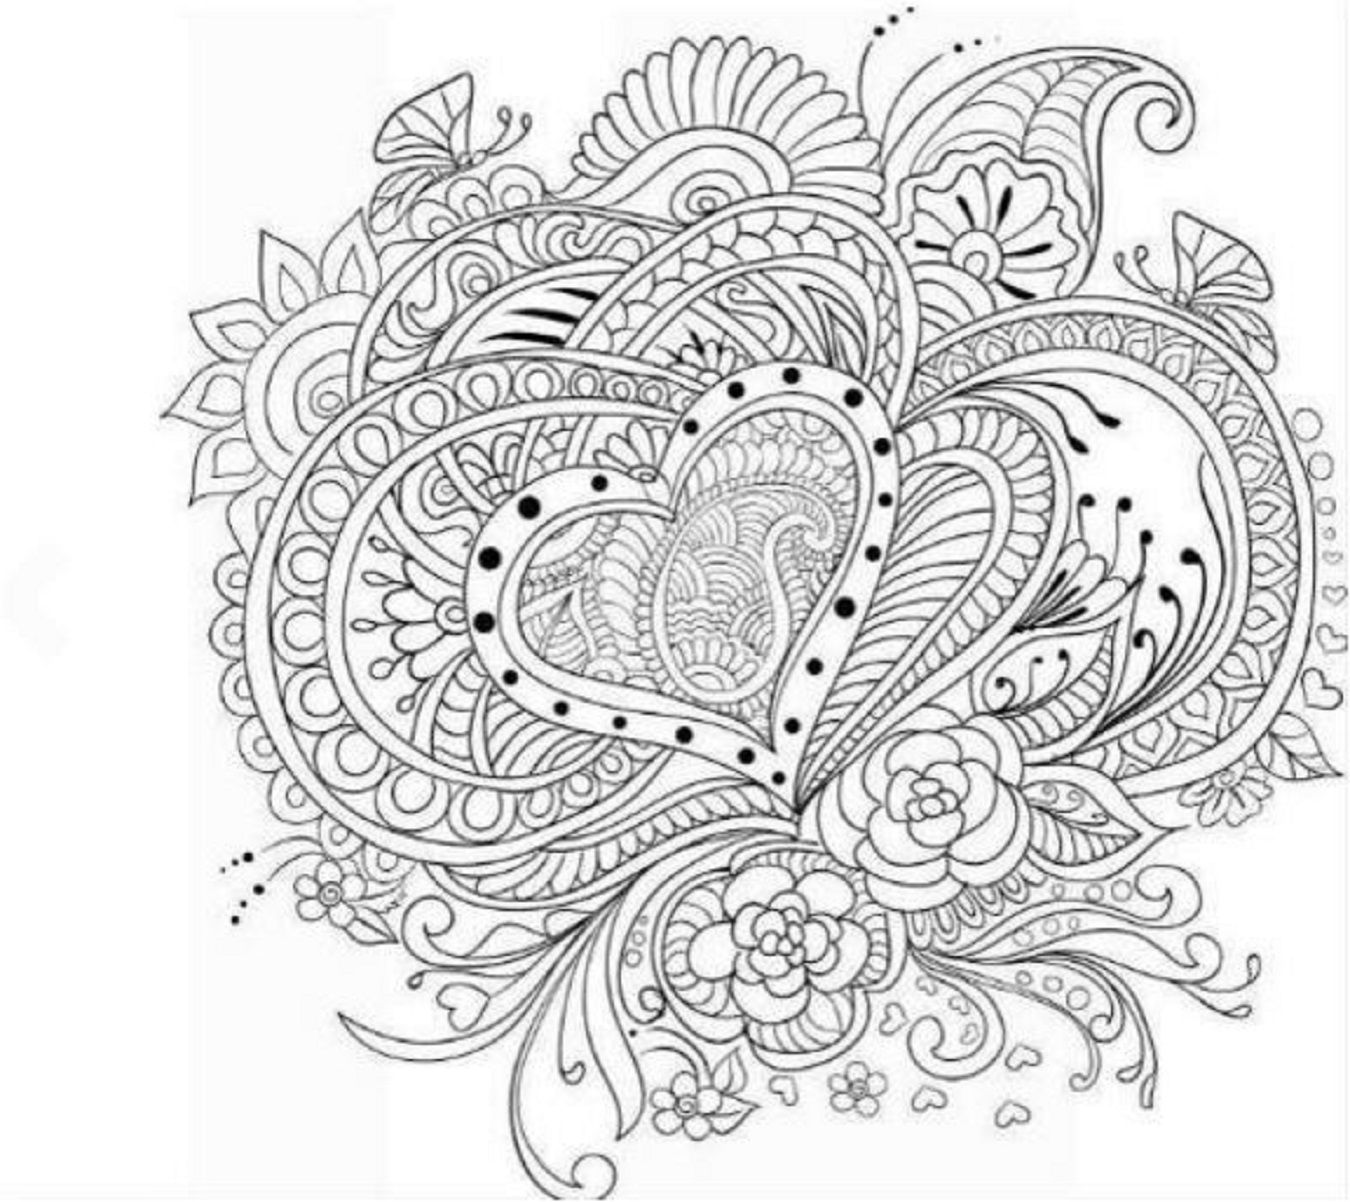 39+ Printable stress relief coloring pages for adults ideas